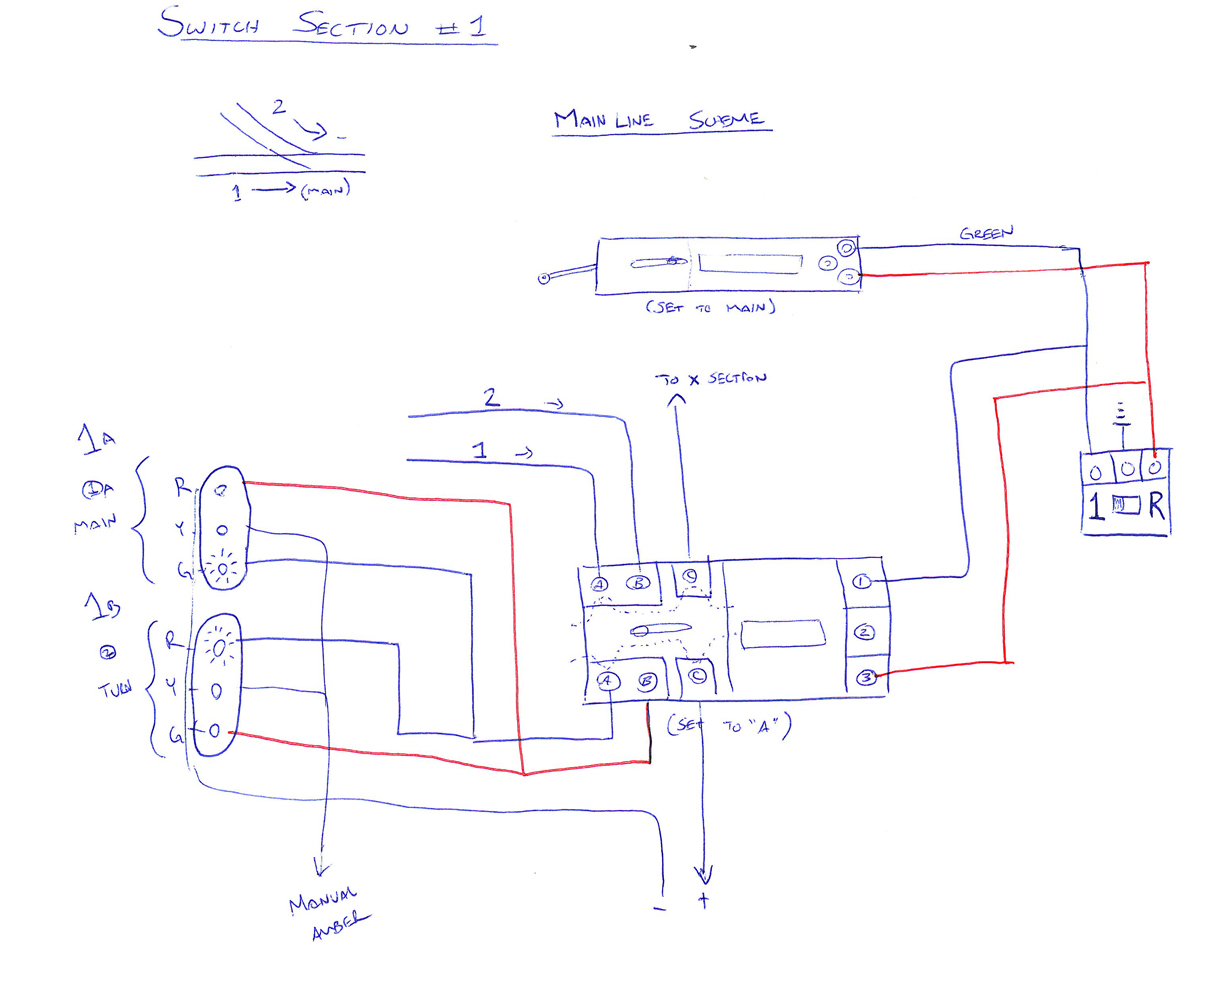 Control And Relay Panel Wiring Diagram : Ty s model railroad design planning